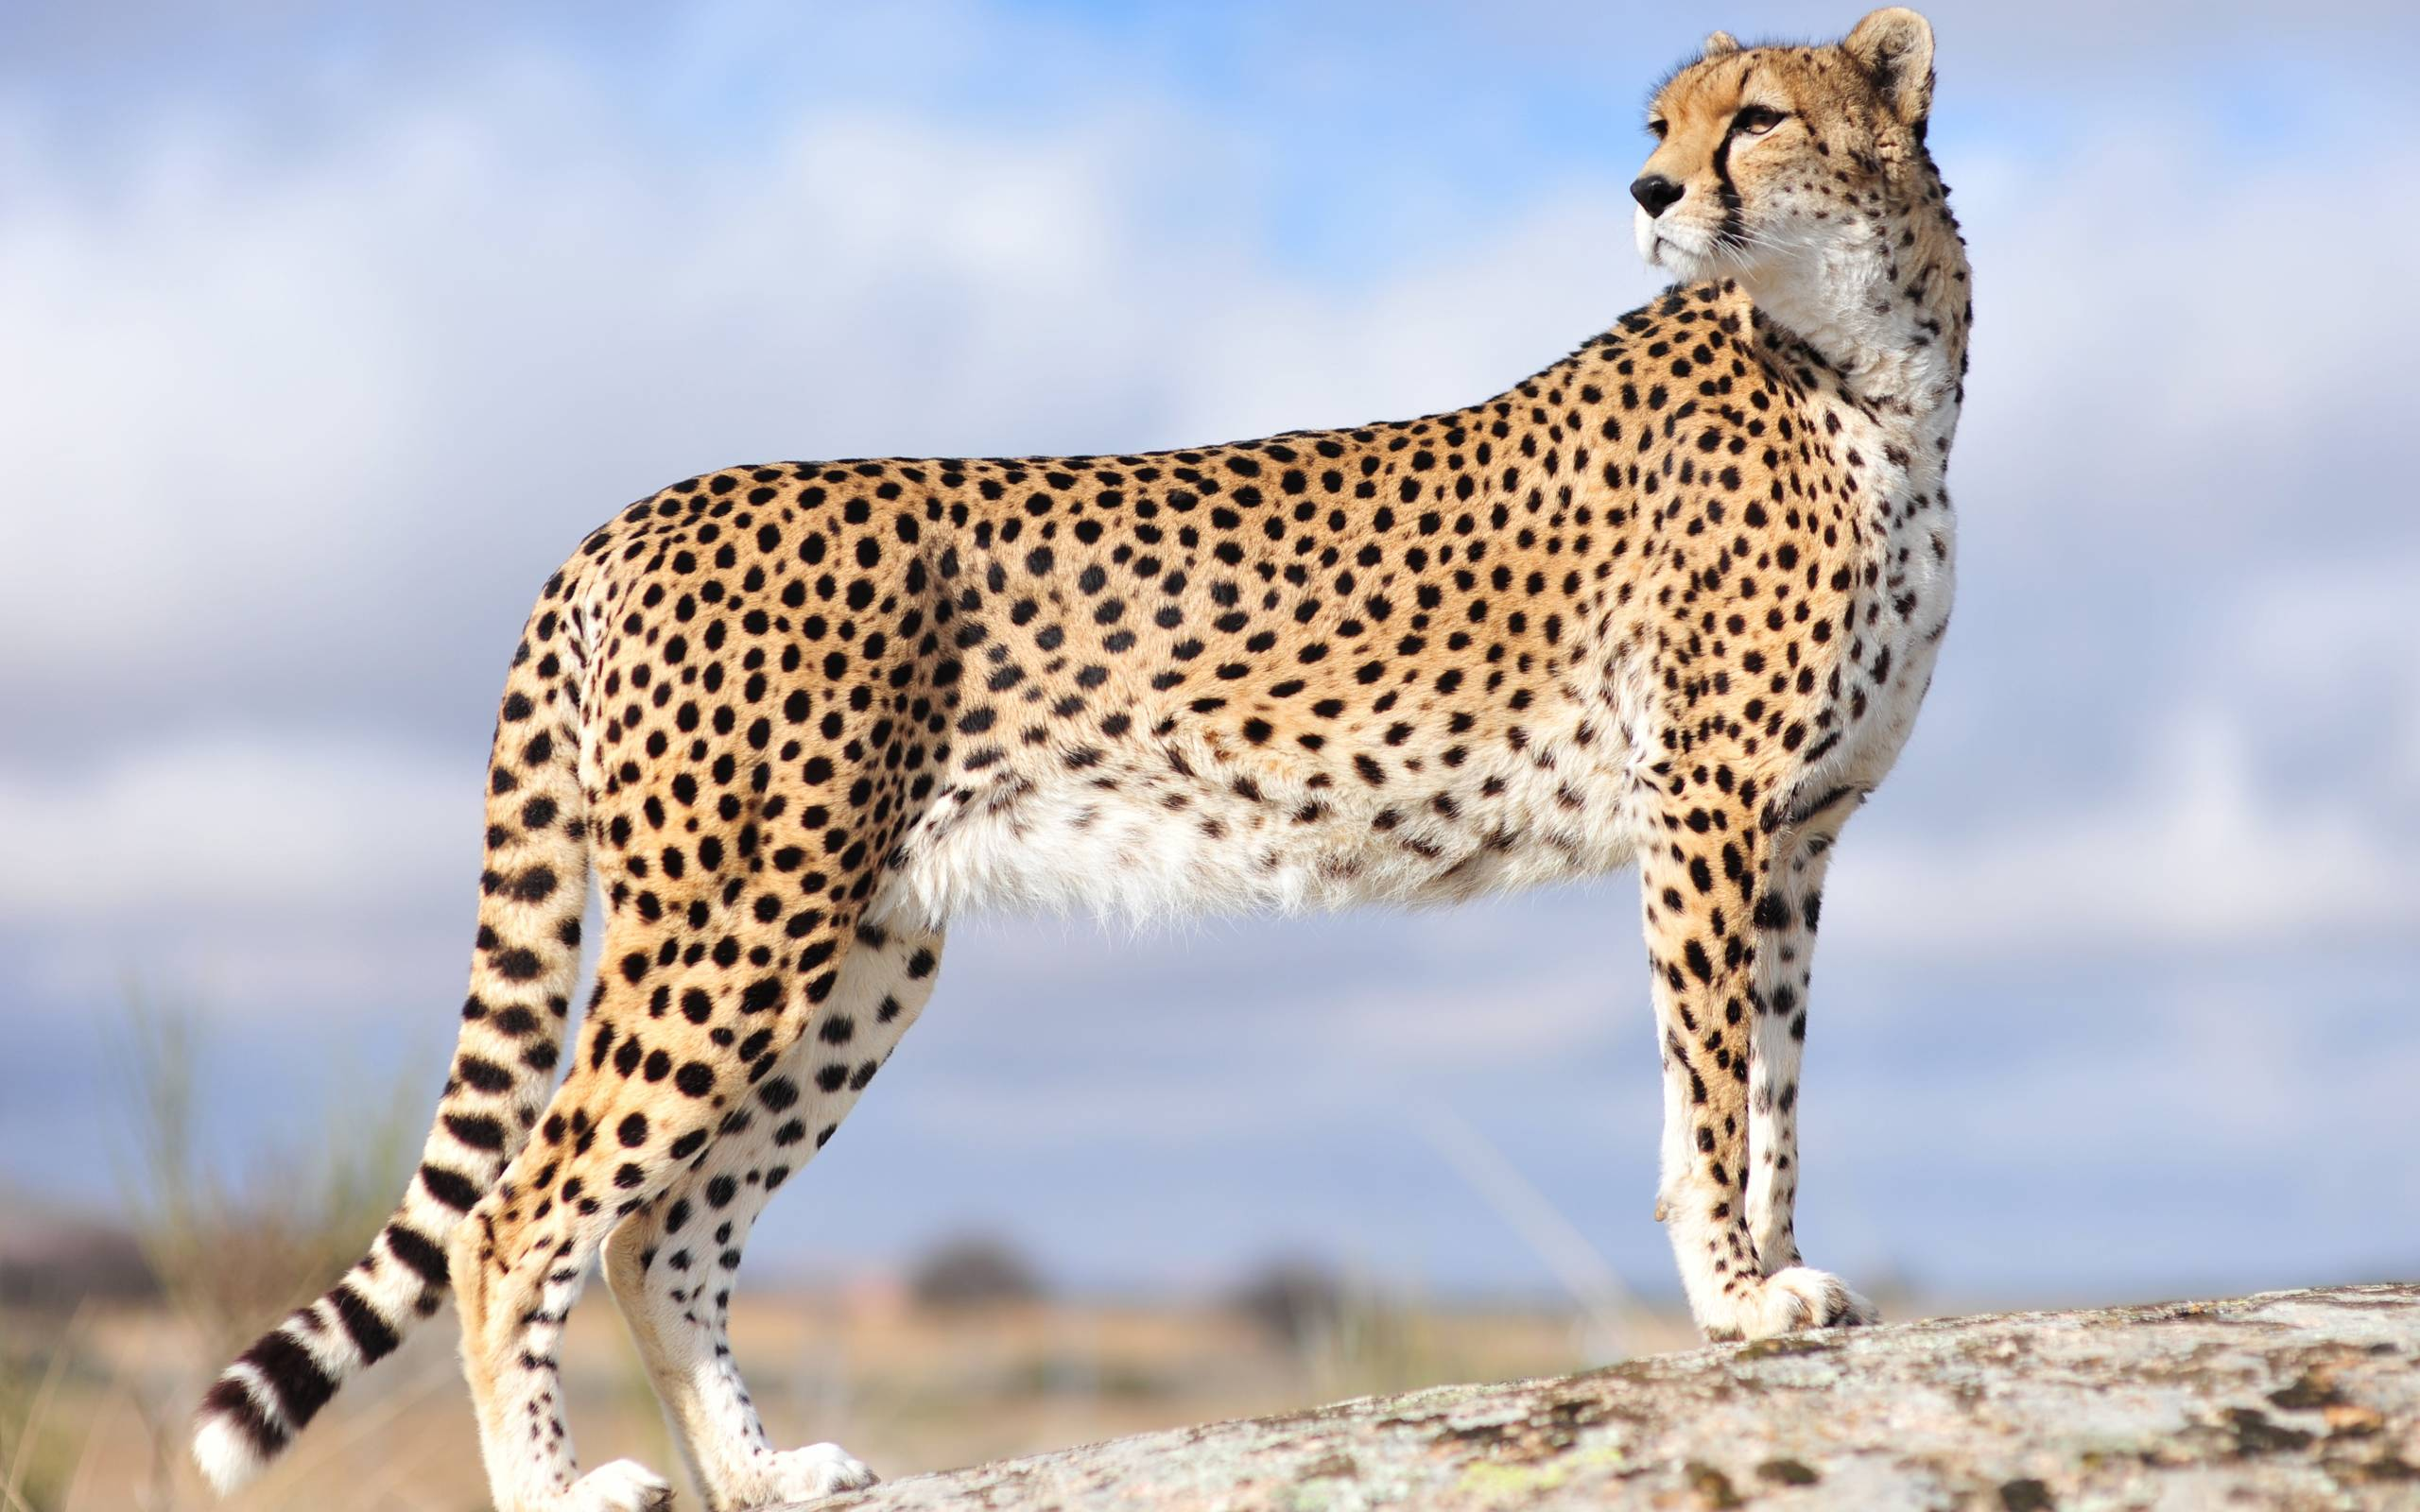 Download Cheetah HD wallpaper for download